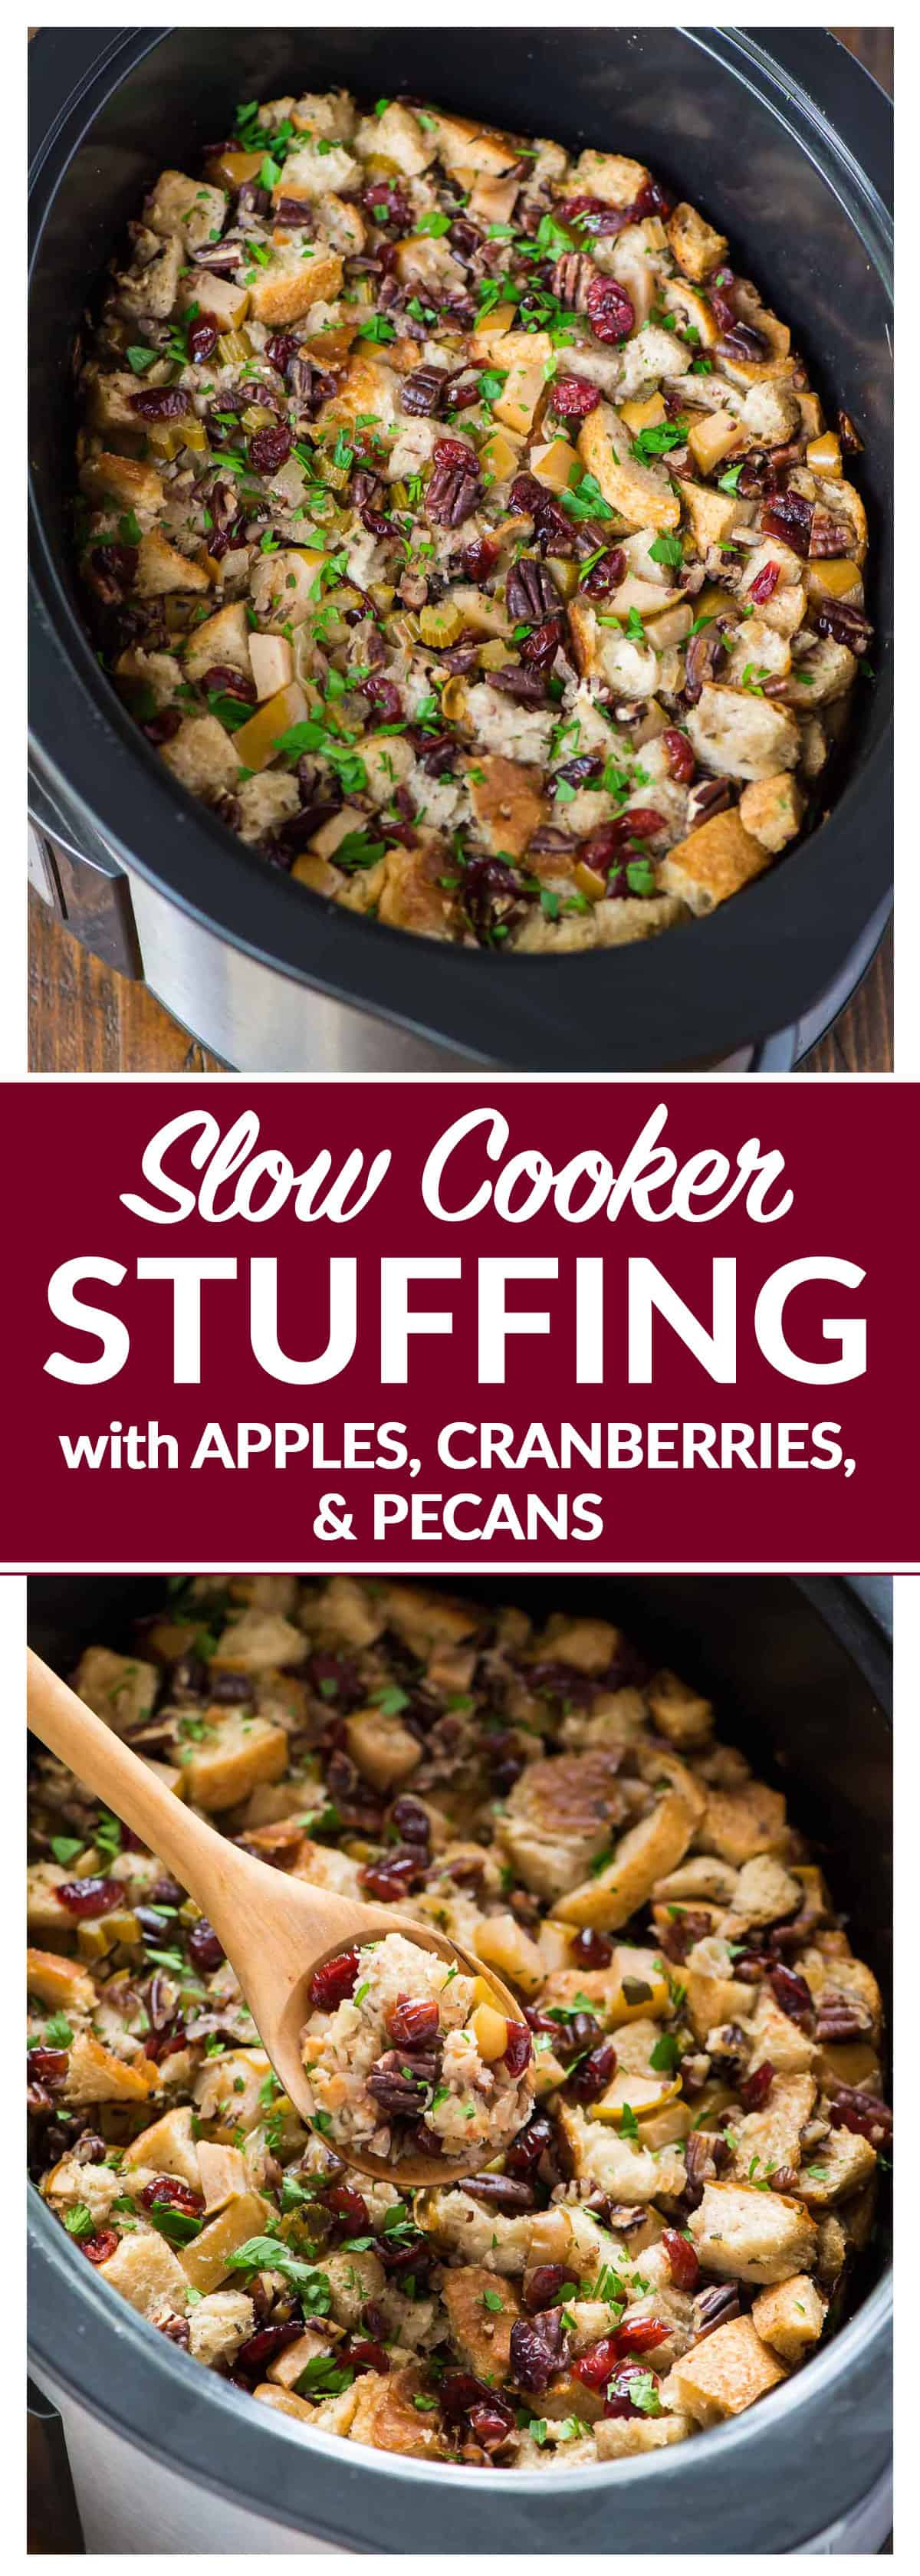 Incredible Slow Cooker Stuffing with Apples, Cranberries, and Pecans. Easy crockpot method that frees up the oven on Thanksgiving. Keep vegetarian or add chicken sausage or mushrooms. #thanksgiving #stuffing #slowcooker #crockpot